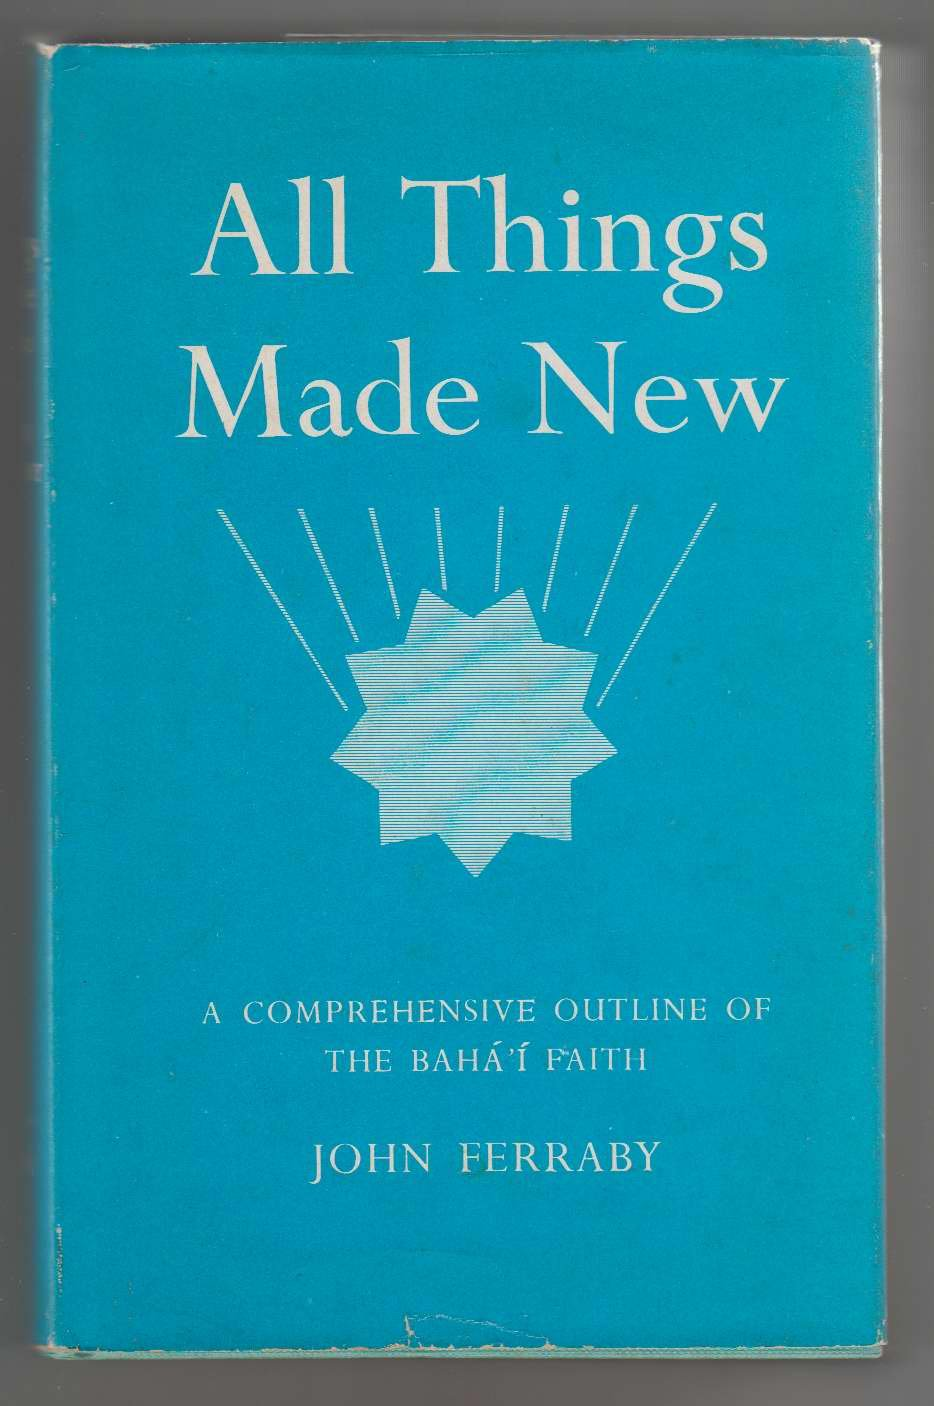 All Things Made New: Comprehensive Outline of the Baha'i Faith